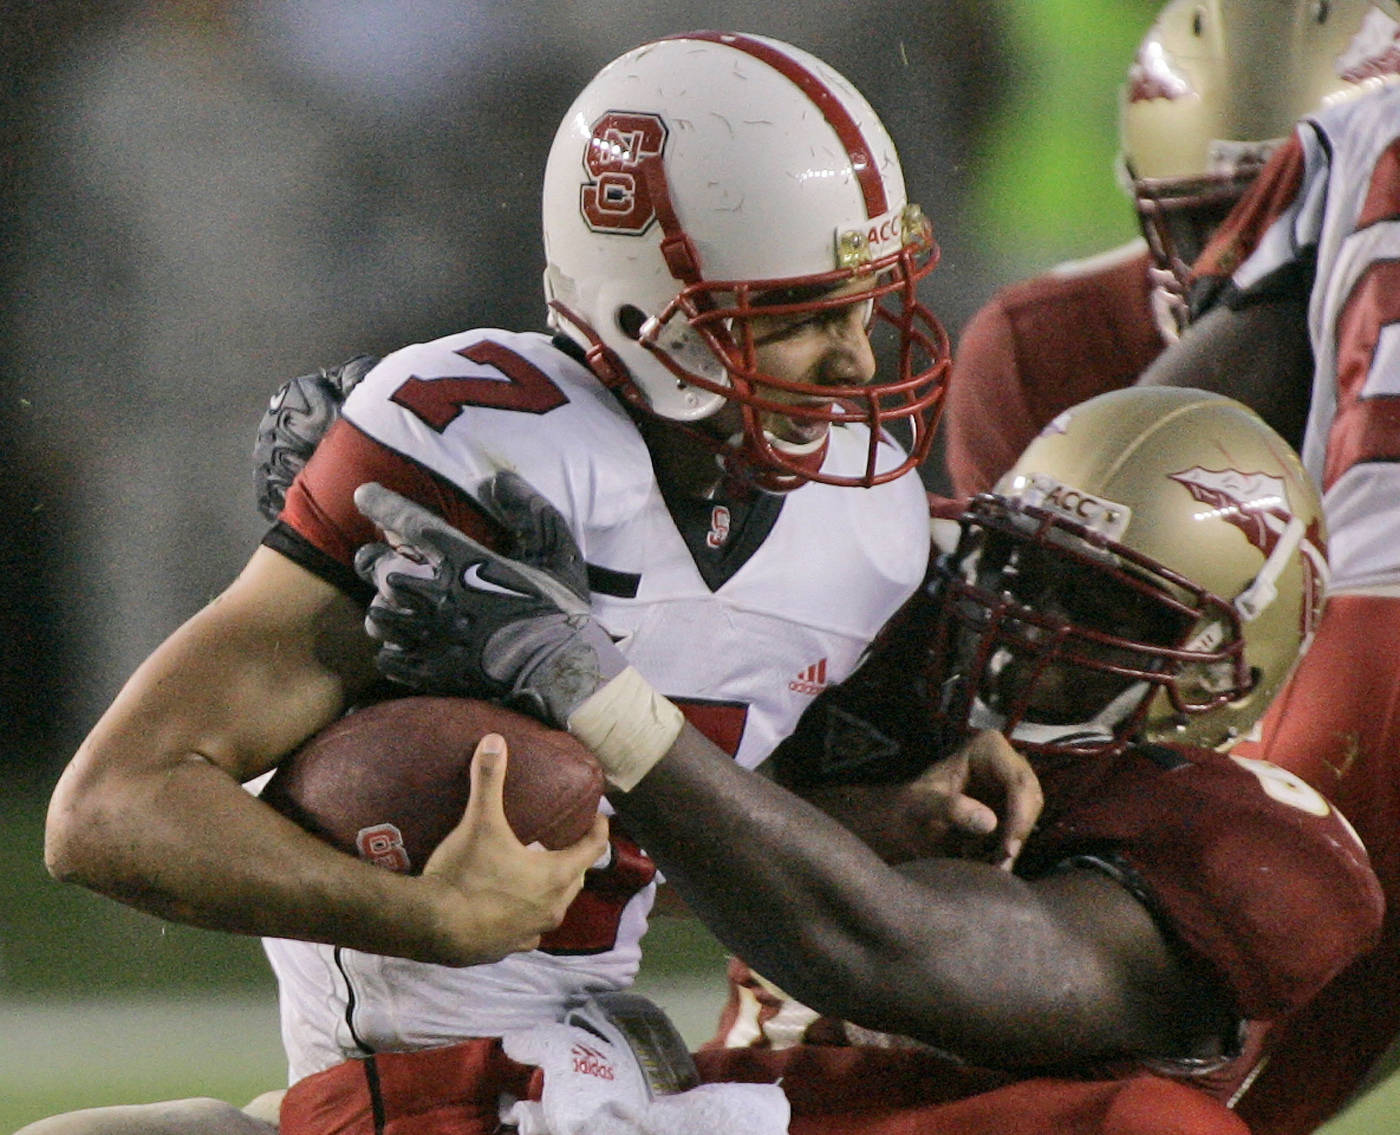 North Carolina State quarterback Daniel Evans, left, is sacked in the fourth quarter by Florida State's Everette Brown. (AP Photo/Phil Coale)